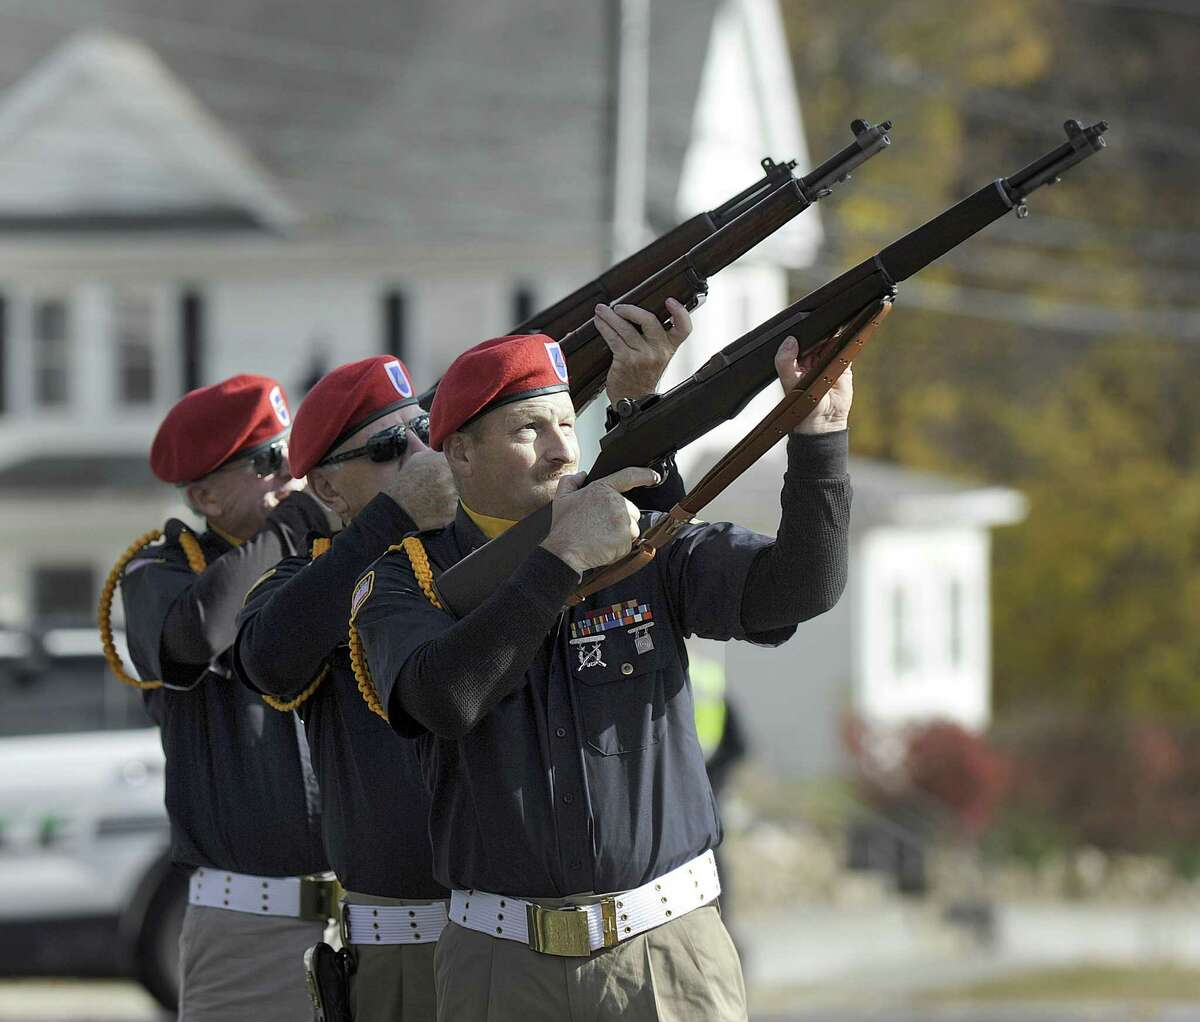 New Milford Veterans Honor Guard give a rifle salute during New Milford's annual Veterans Day ceremony on the New Milford Green, Friday, Nov. 11, 2016